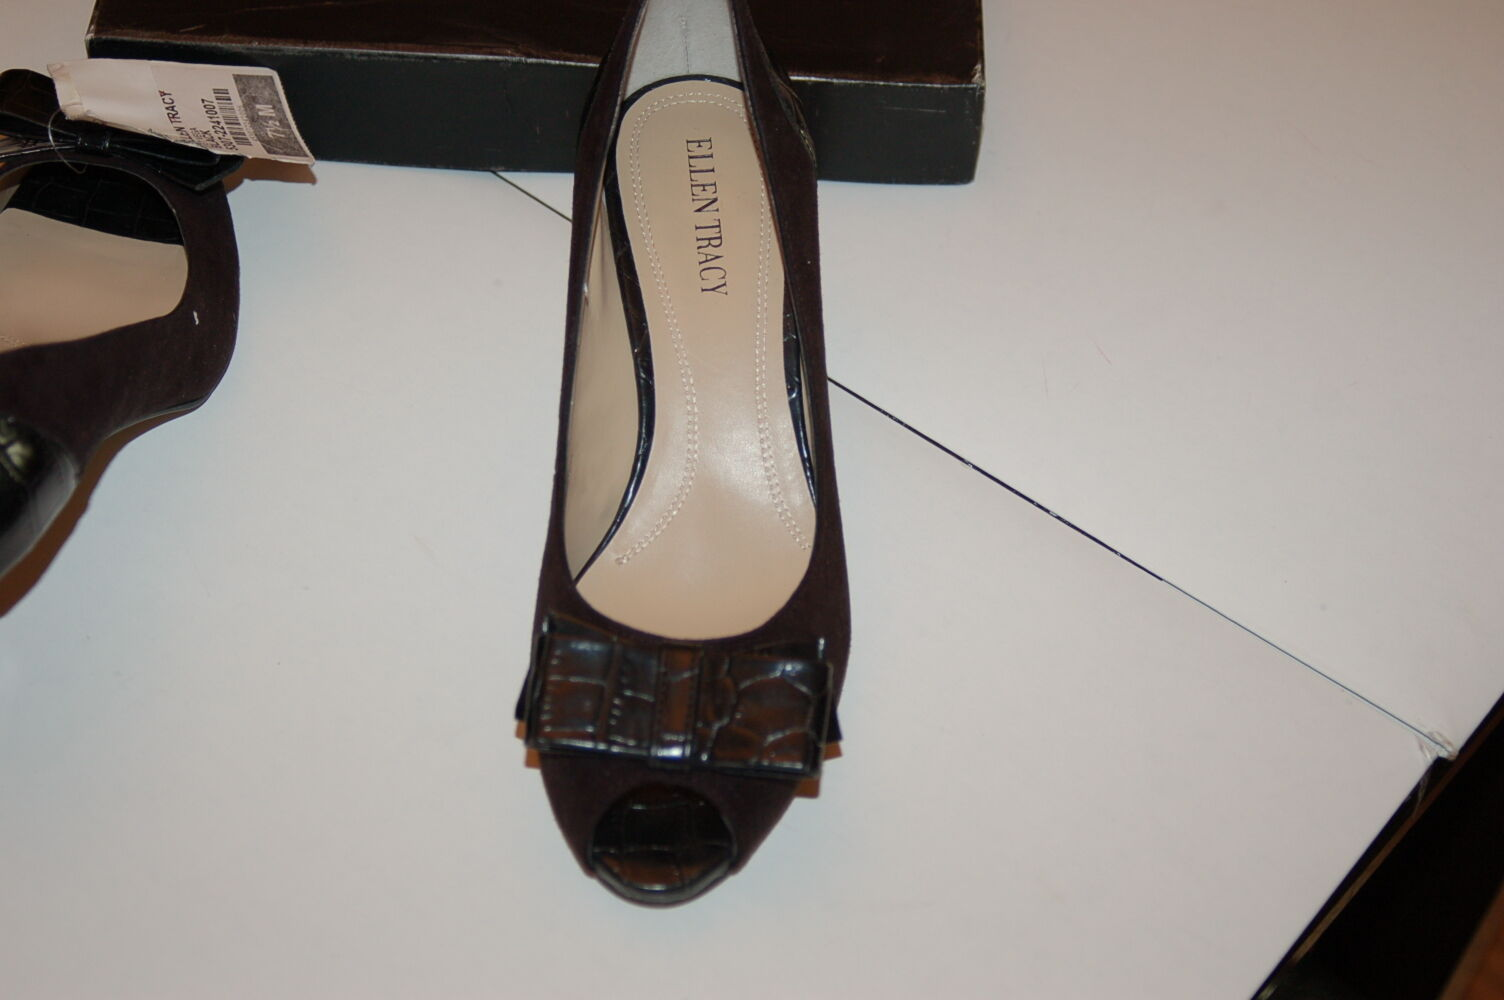 NWB ELEGANT ELLEN TRACY SHOE BLACK SZ.7,5 OPEN TOE SHOE TRACY RET.$99 bd2908